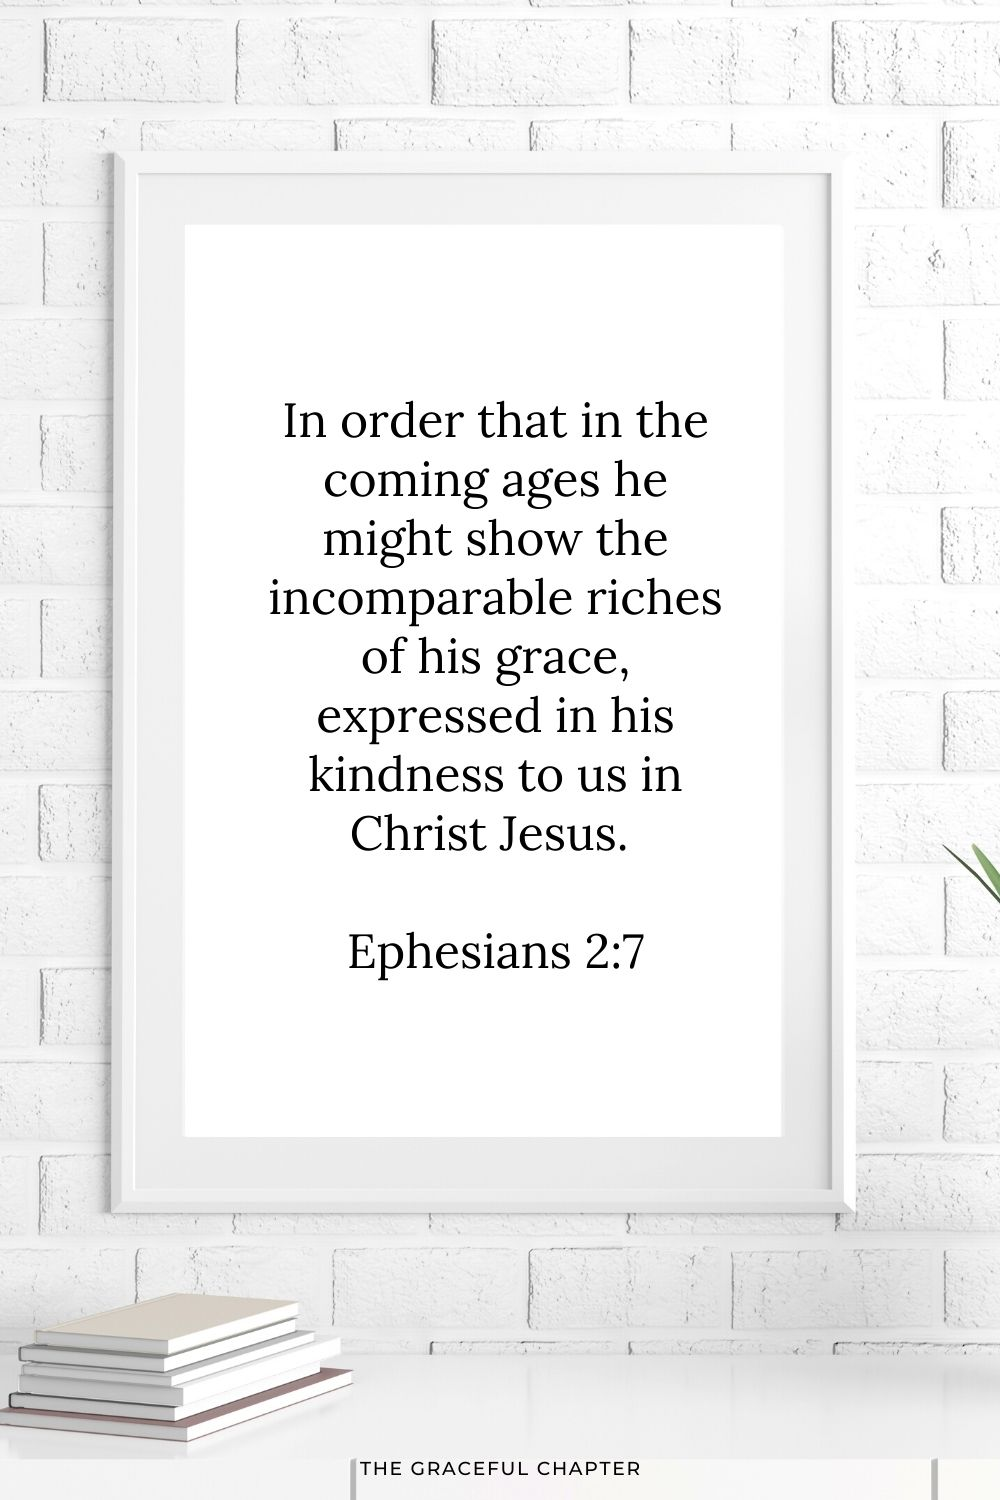 In order that in the coming ages he might show the incomparable riches of his grace, expressed in his kindness to us in Christ Jesus. Ephesians 2:7